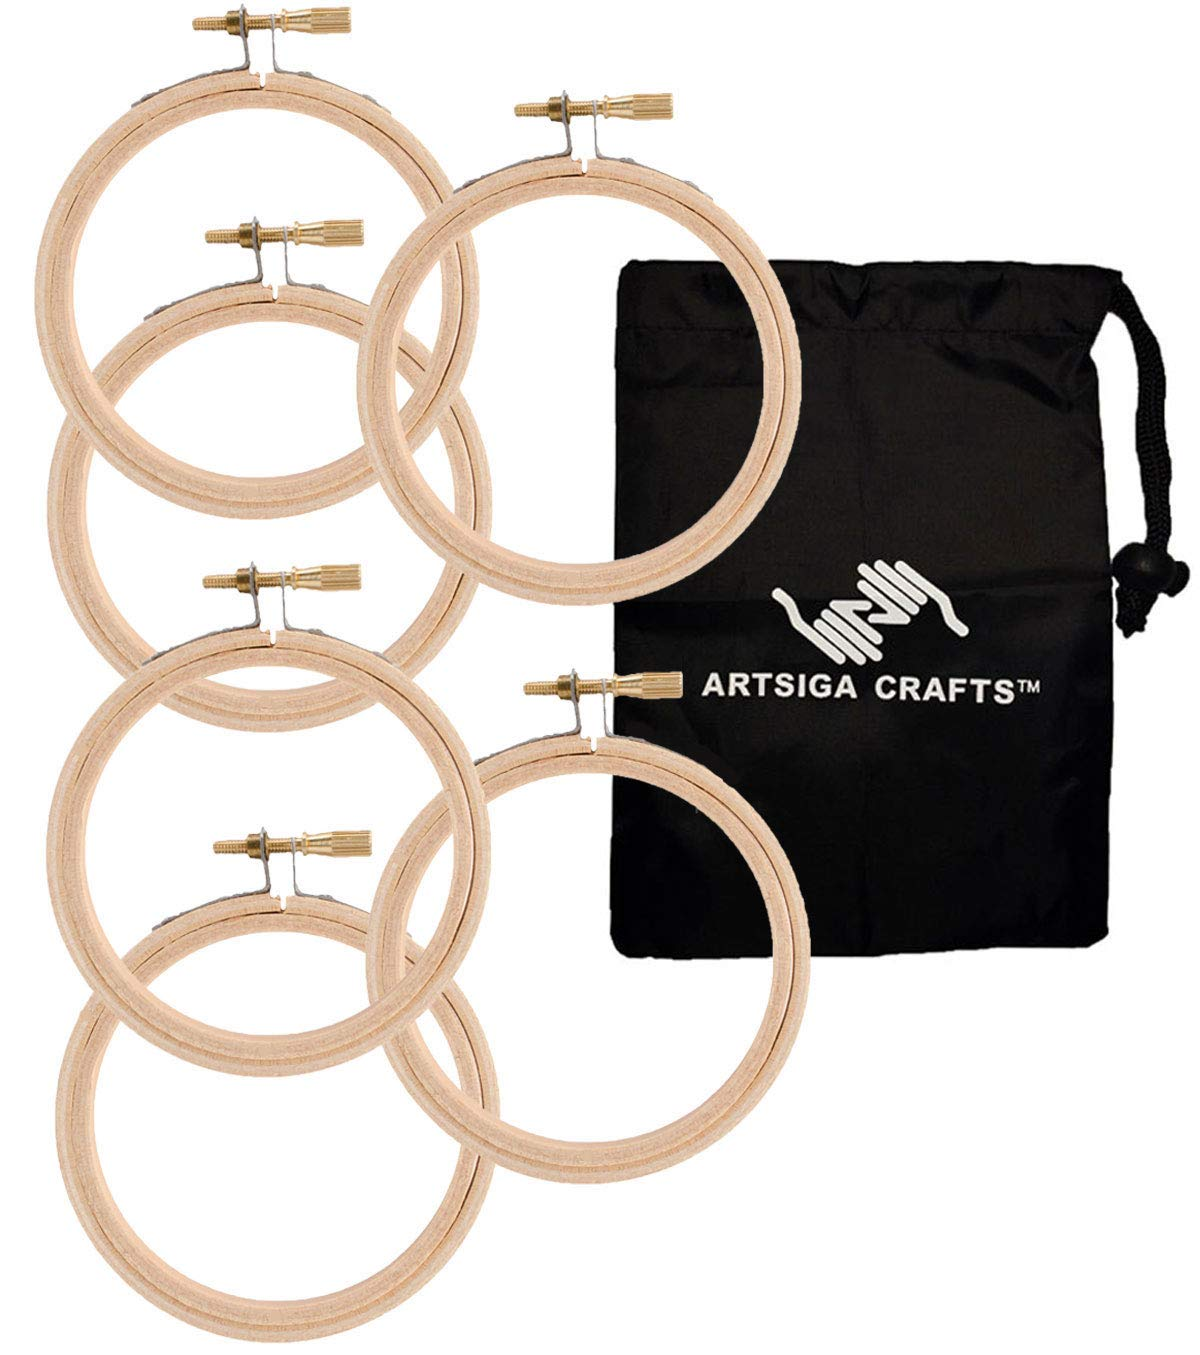 Bundle with 1 Artsiga Crafts Small Bag 6 Pack Darice DIY Crafts Supplies Embroidery Hoops 6 inch Wooden Round